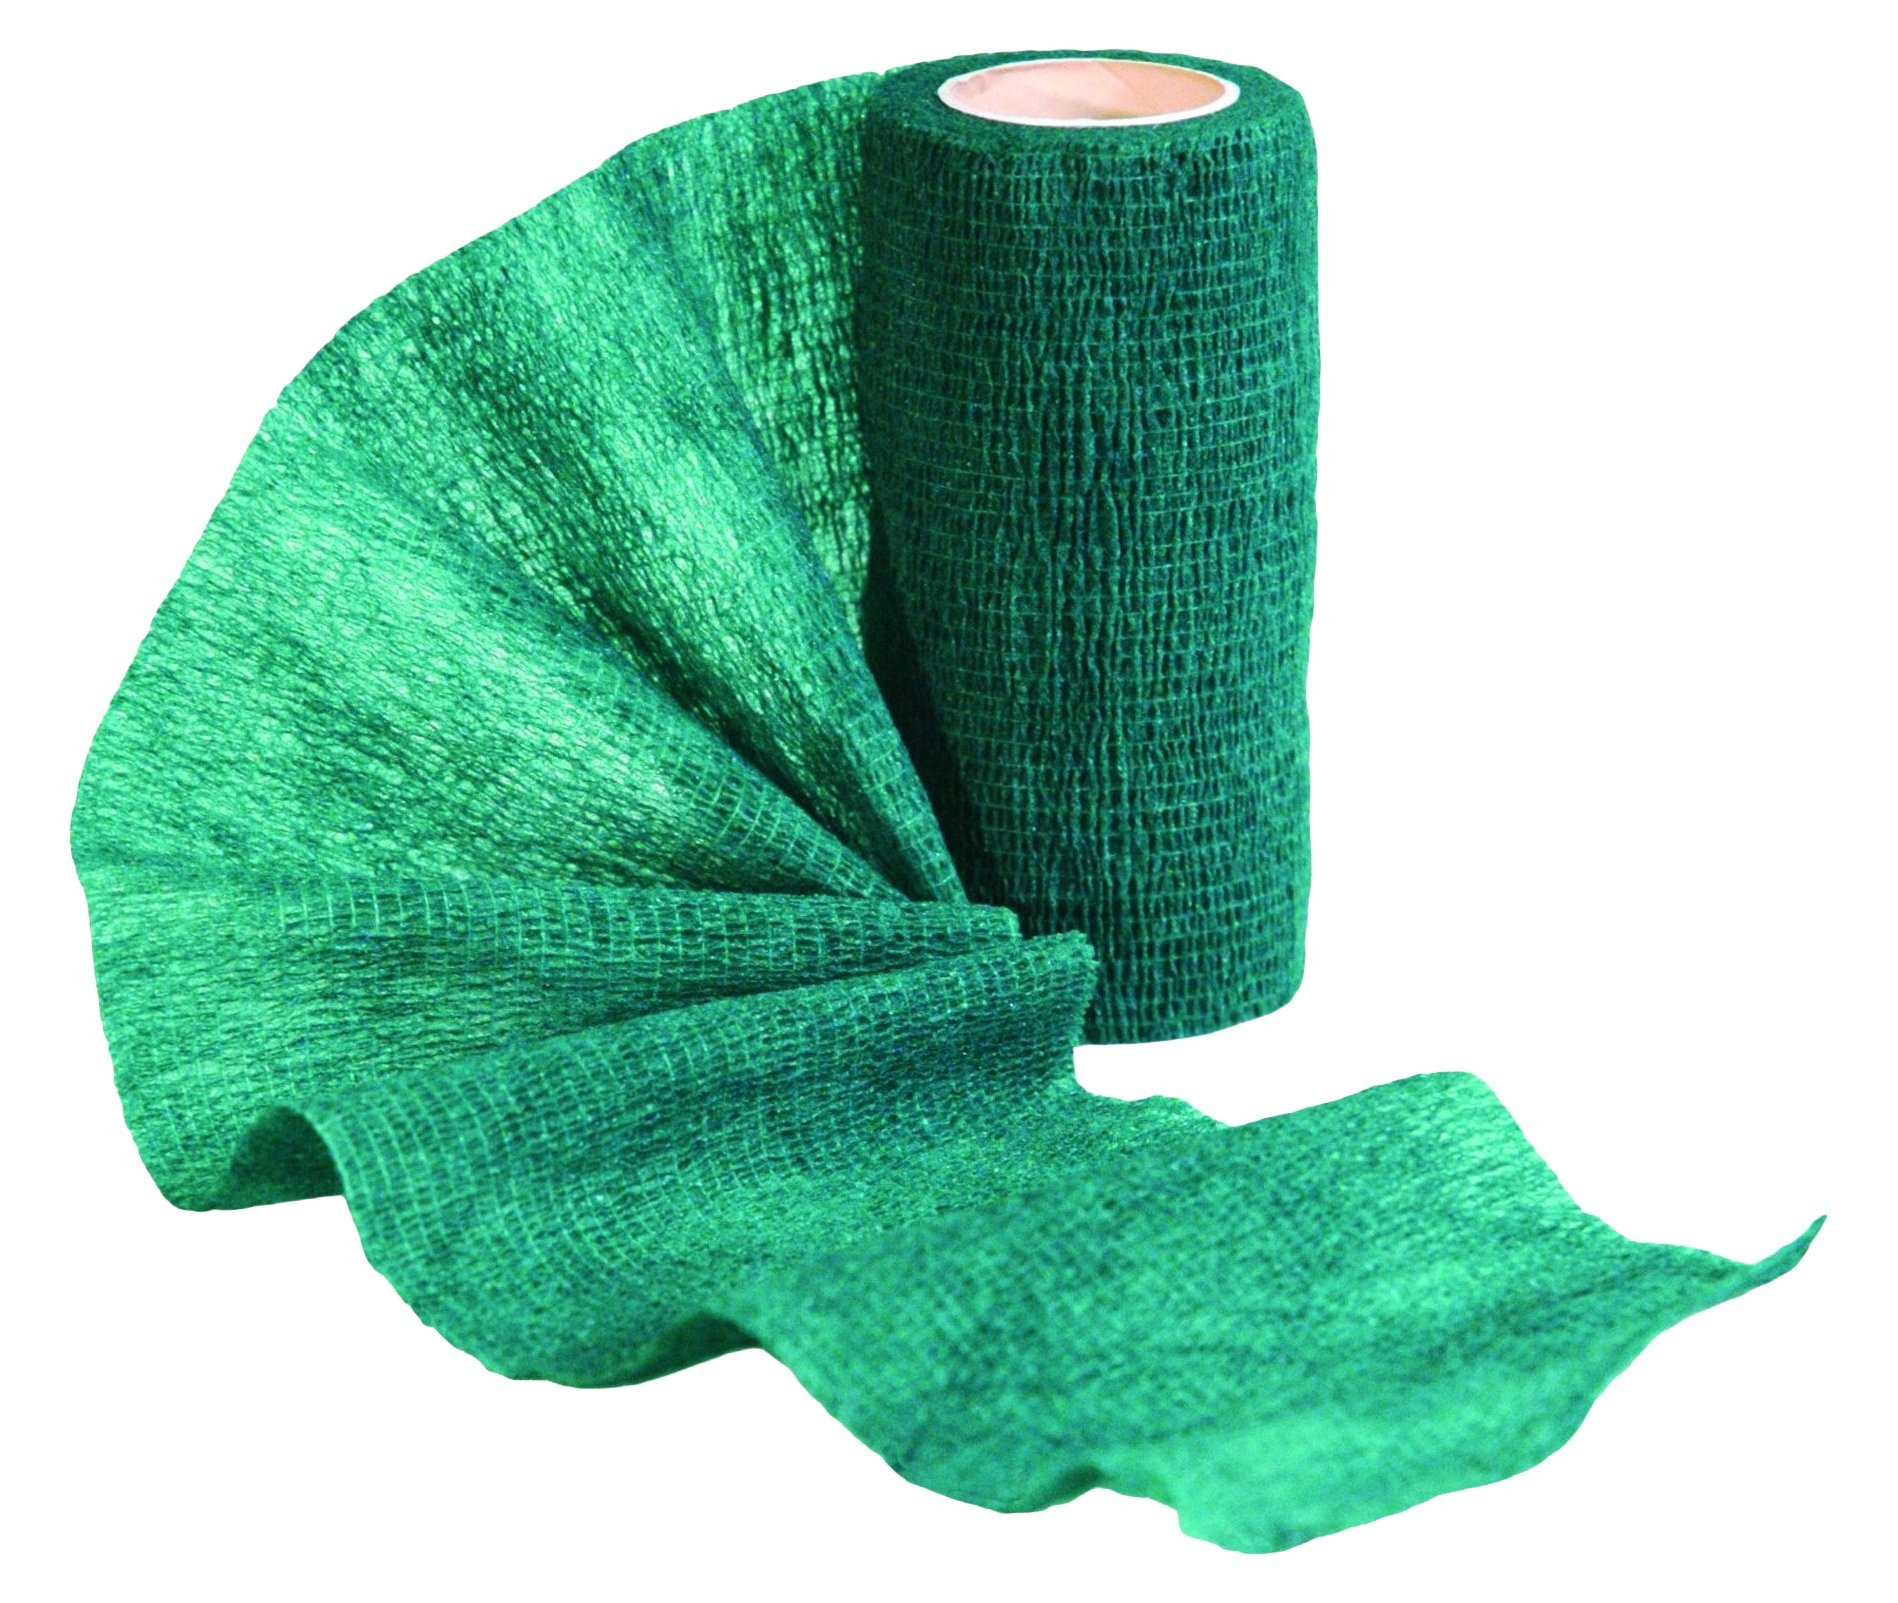 SUREFLEXX, DARK GREEN 2'' X 5 YARD ROLL (BOX OF 36), VET WRAP, SELF-ADHERENT COHESIVE GENERAL PURPOSE WRAP.